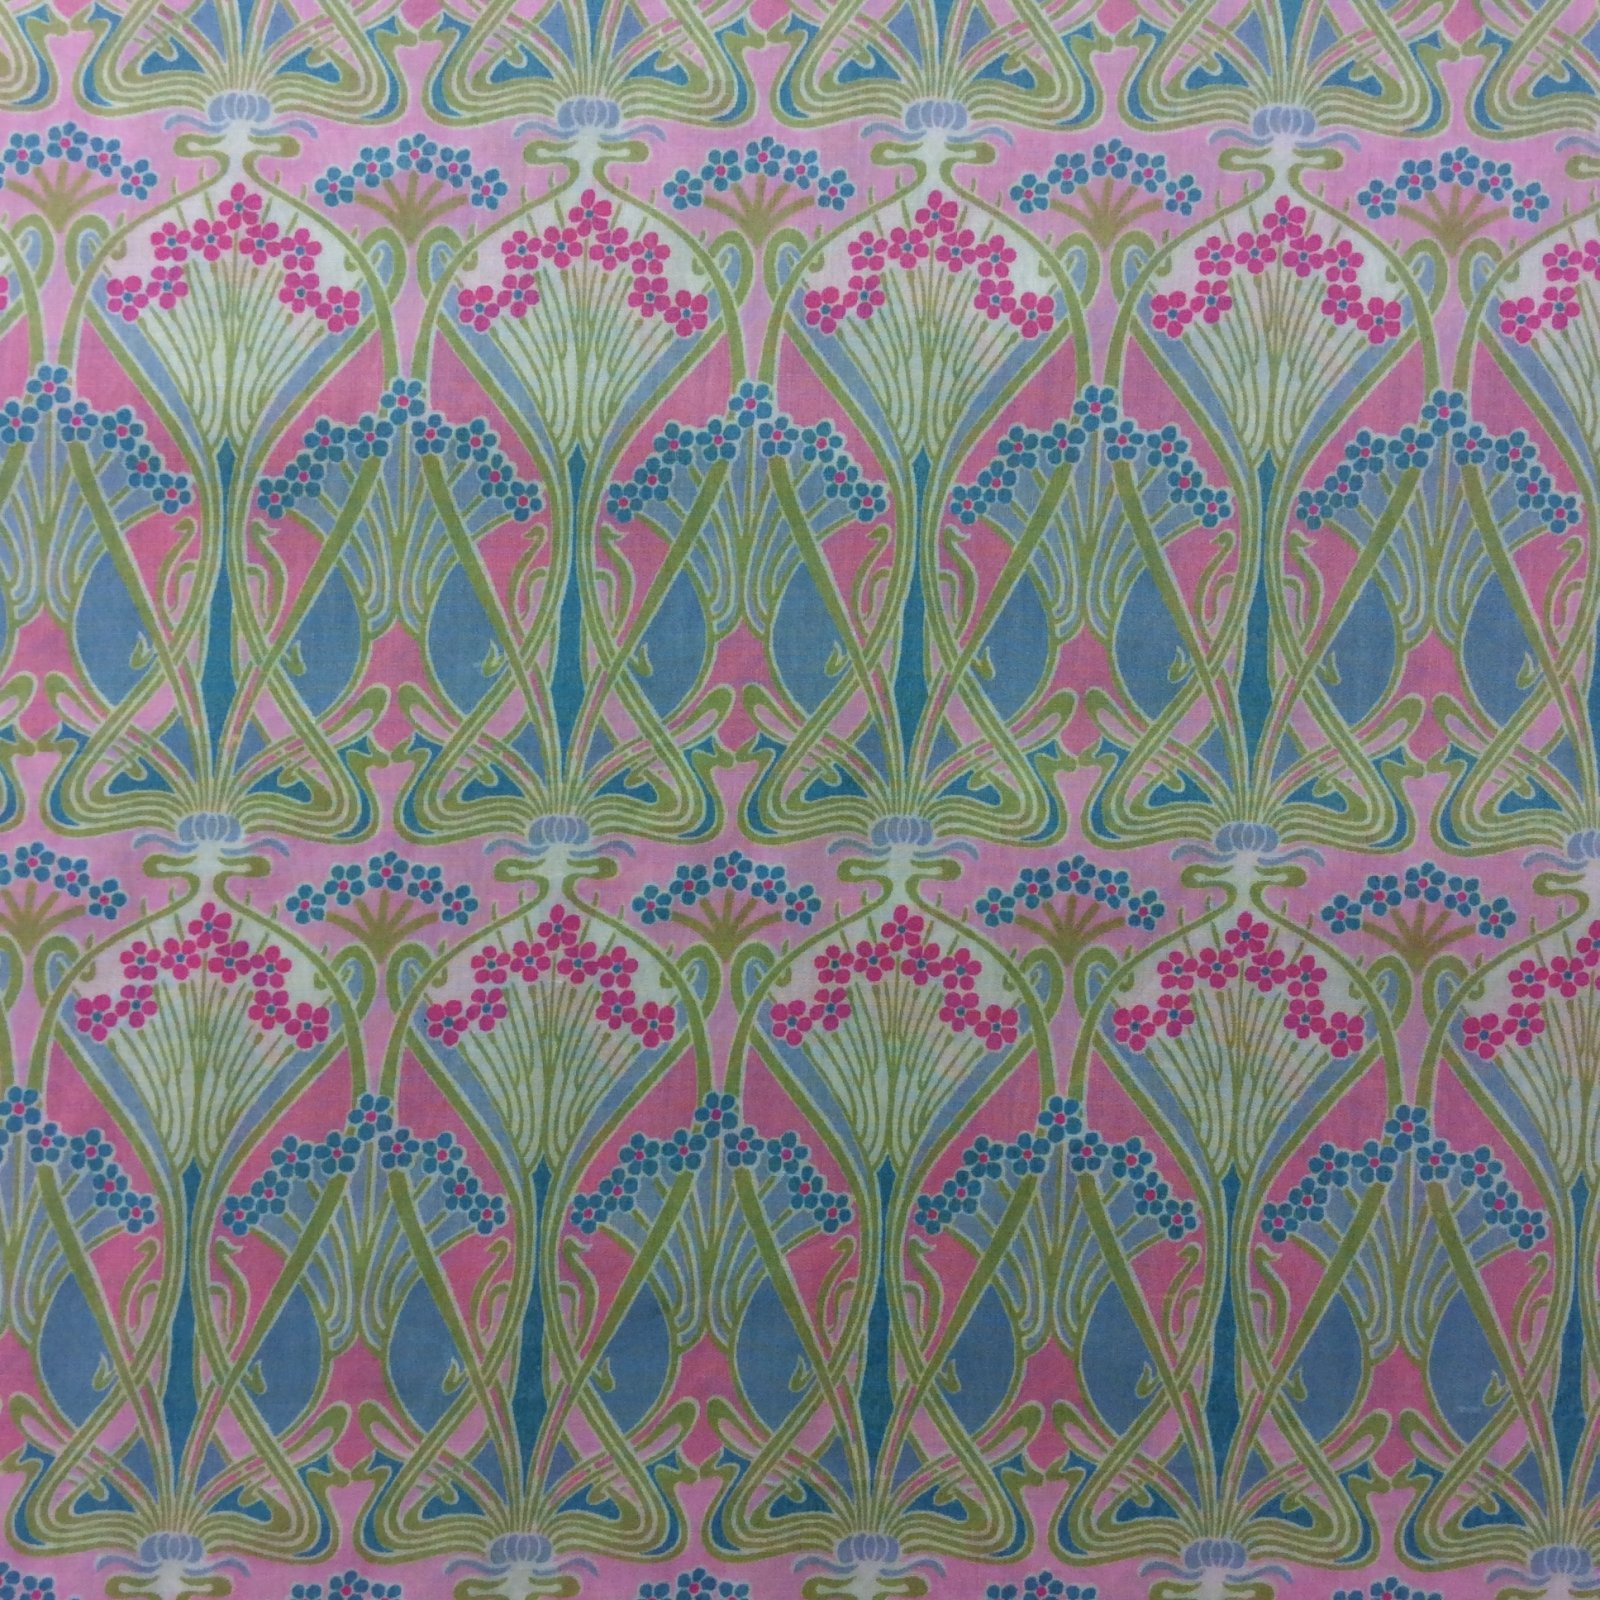 Liberty of London Pink Floral Cotton Apparel Lawn Fabric Fashion Fabric LL03